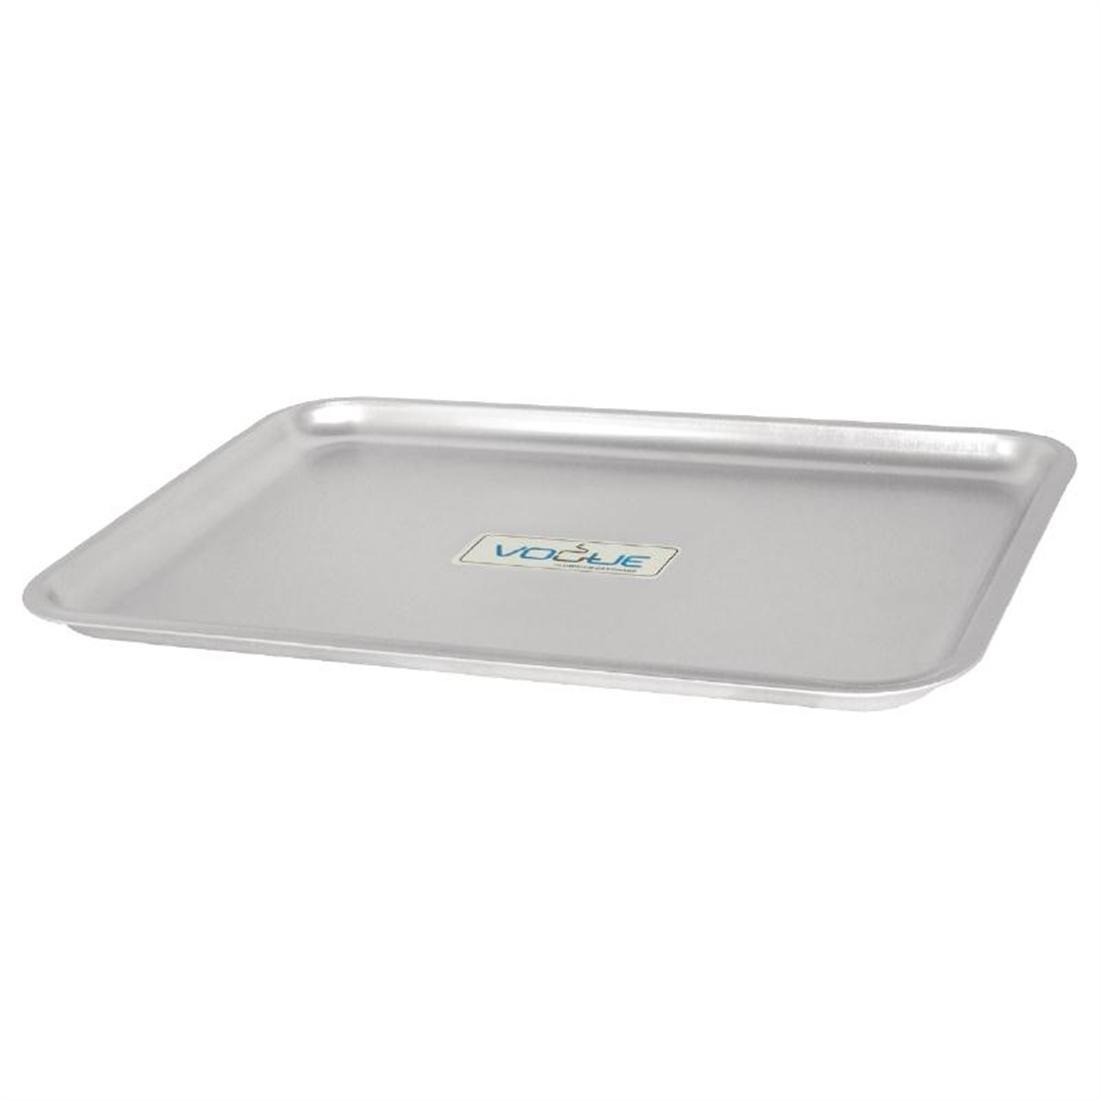 Vogue Aluminium Baking Tray 527 x 425mm - Each - K446